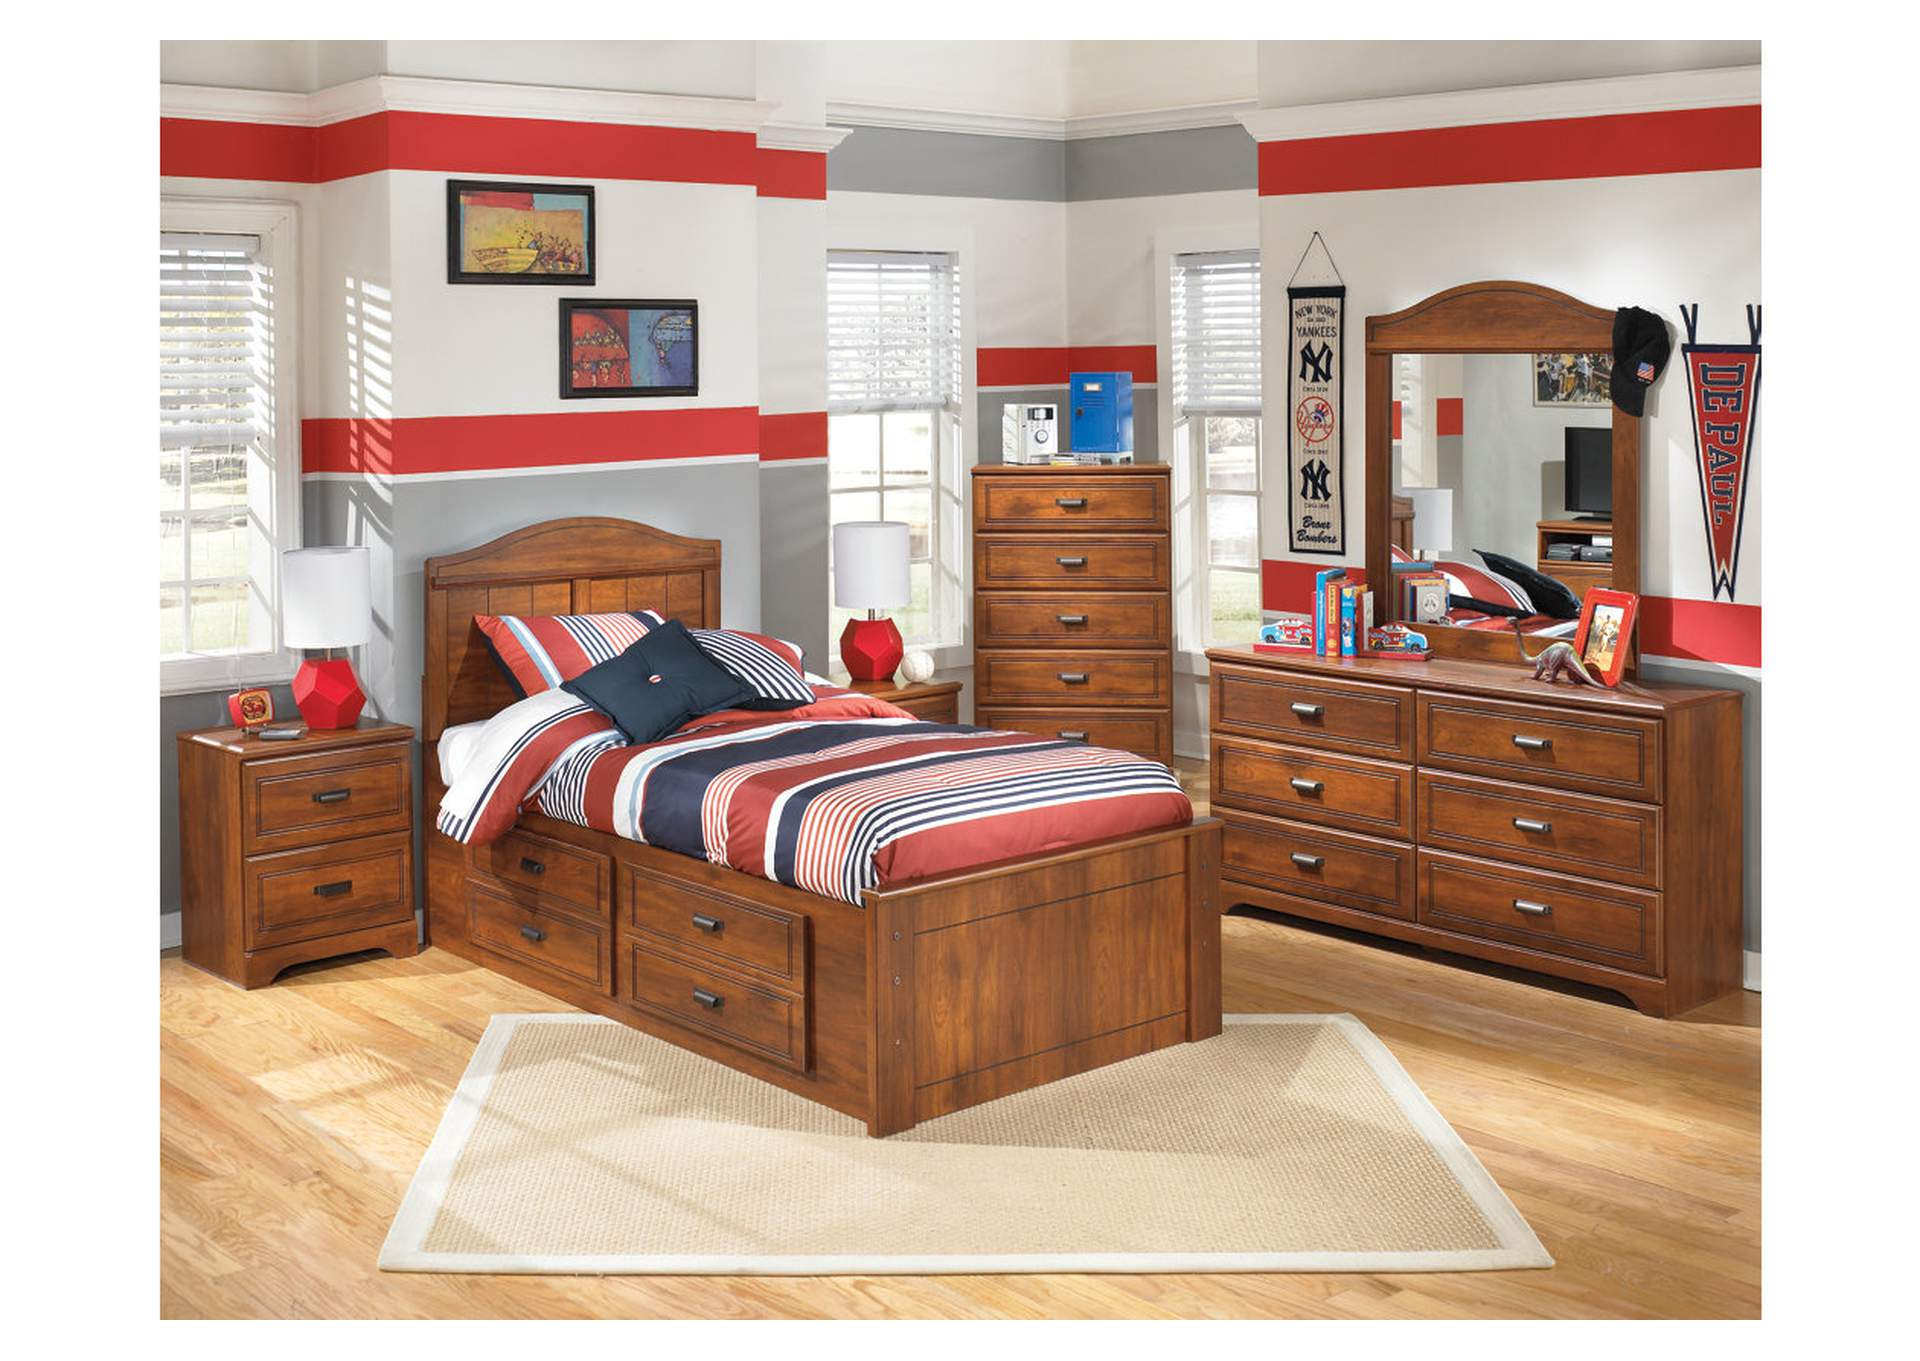 Barchan Twin Panel Storage Bed w/Dresser, Mirror, Drawer Chest & Nightstand,Signature Design by Ashley